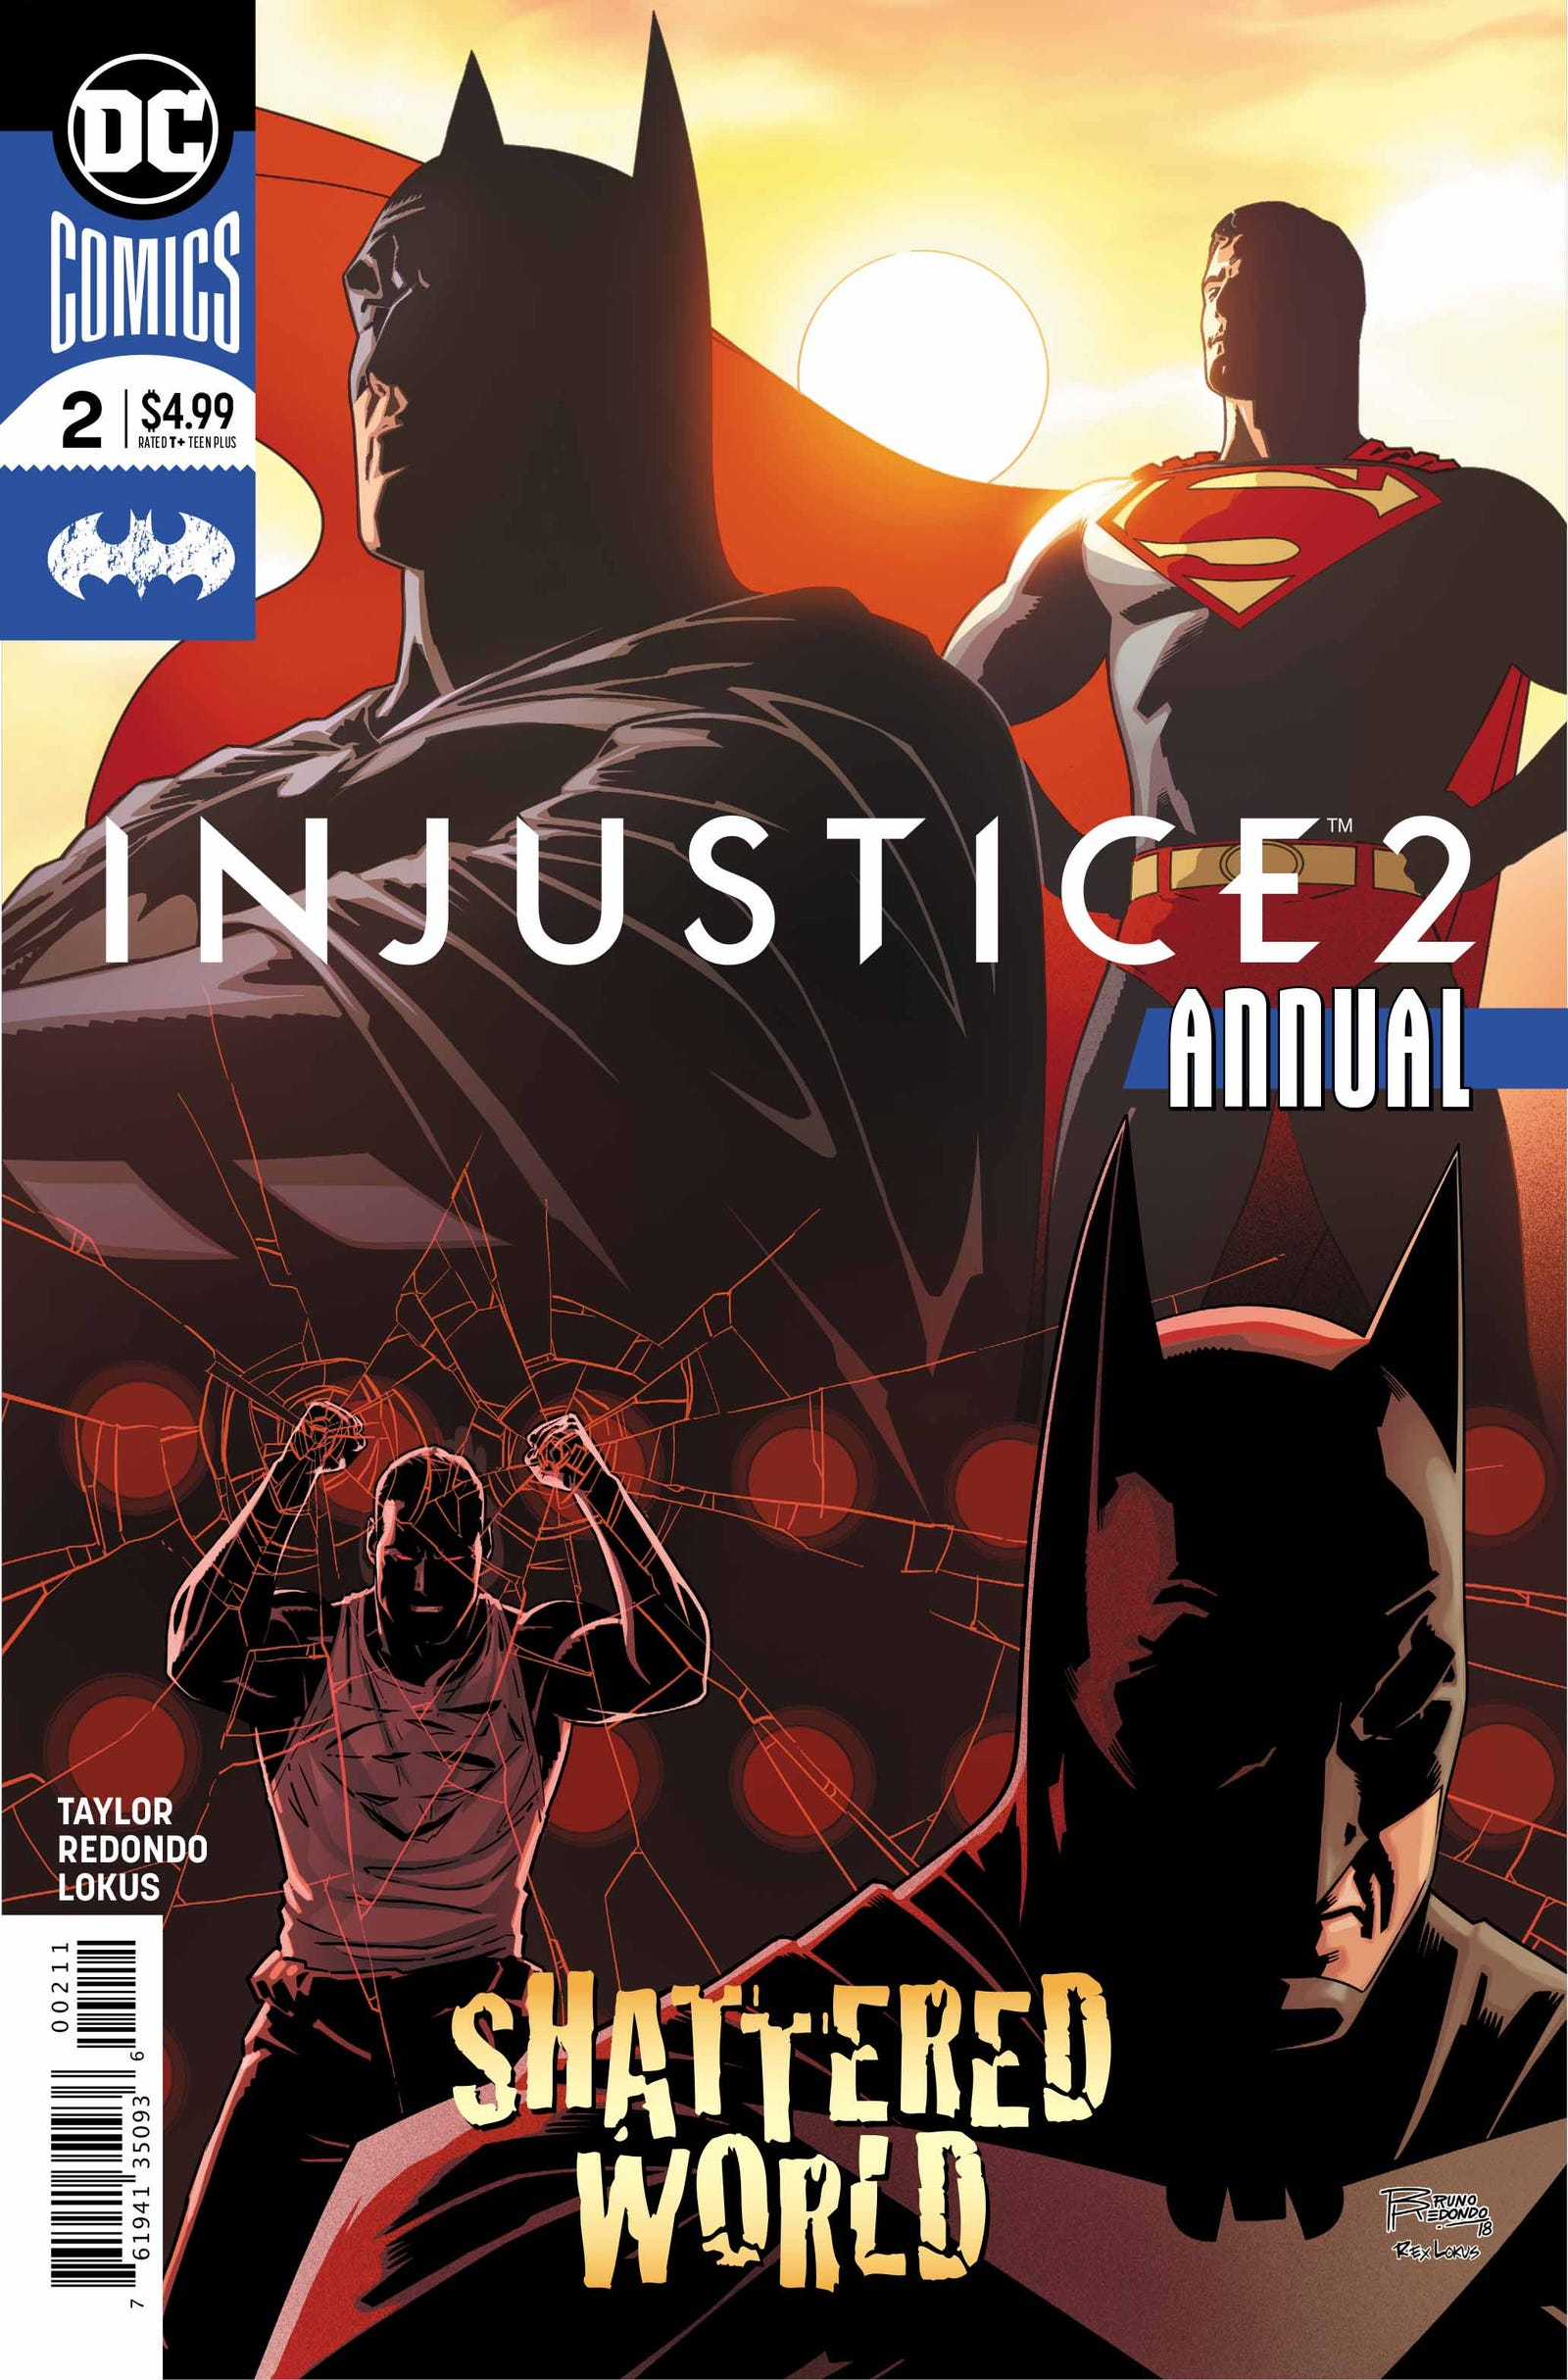 Cover by Bruno Redondo and Rex Lokus